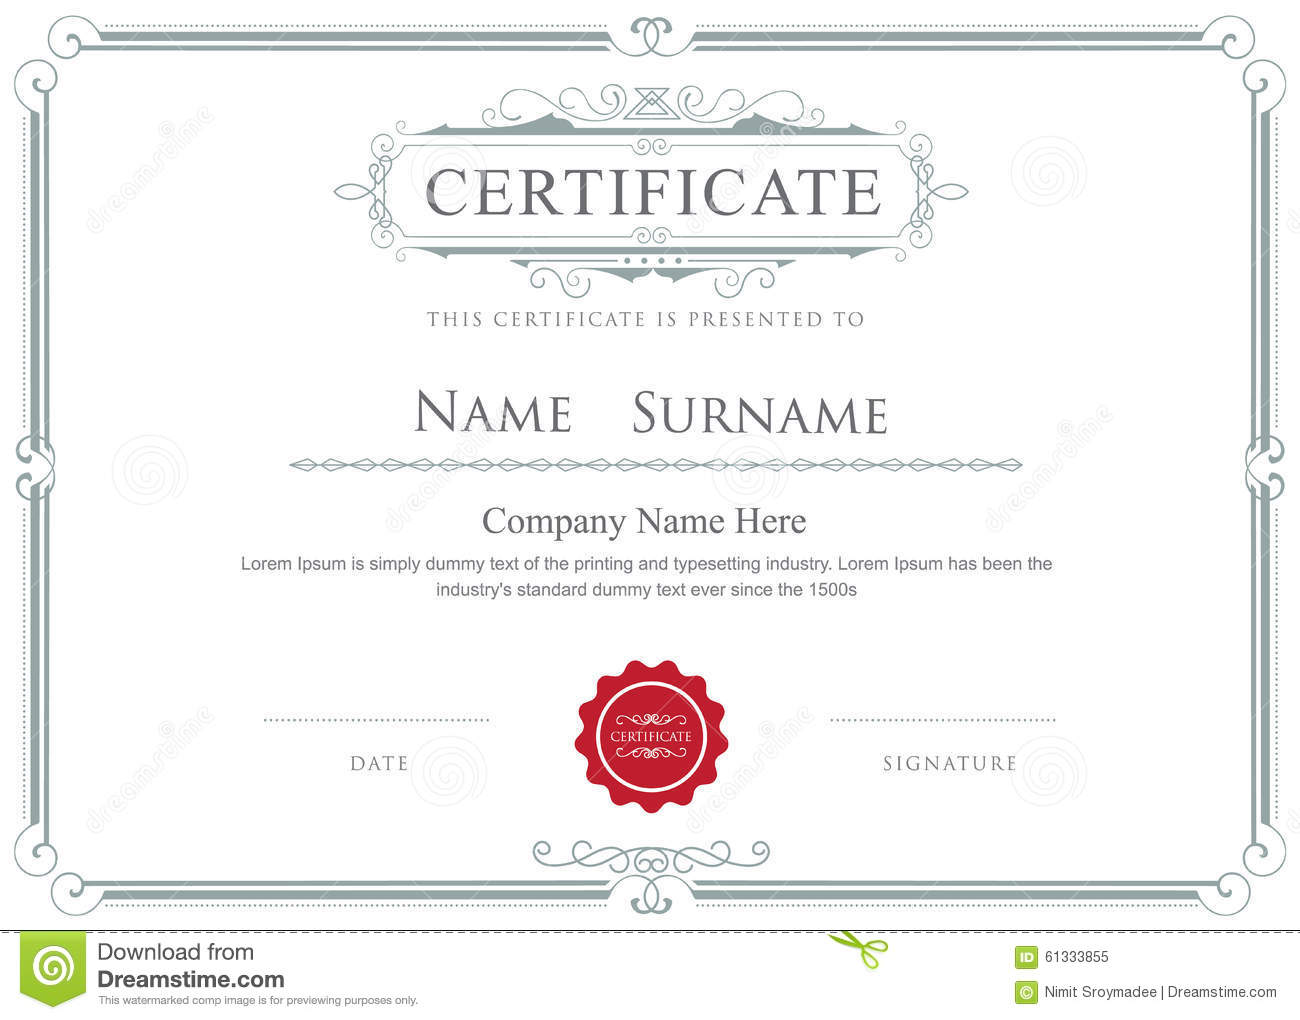 certification document template - certificate border vector elegant flourishes template